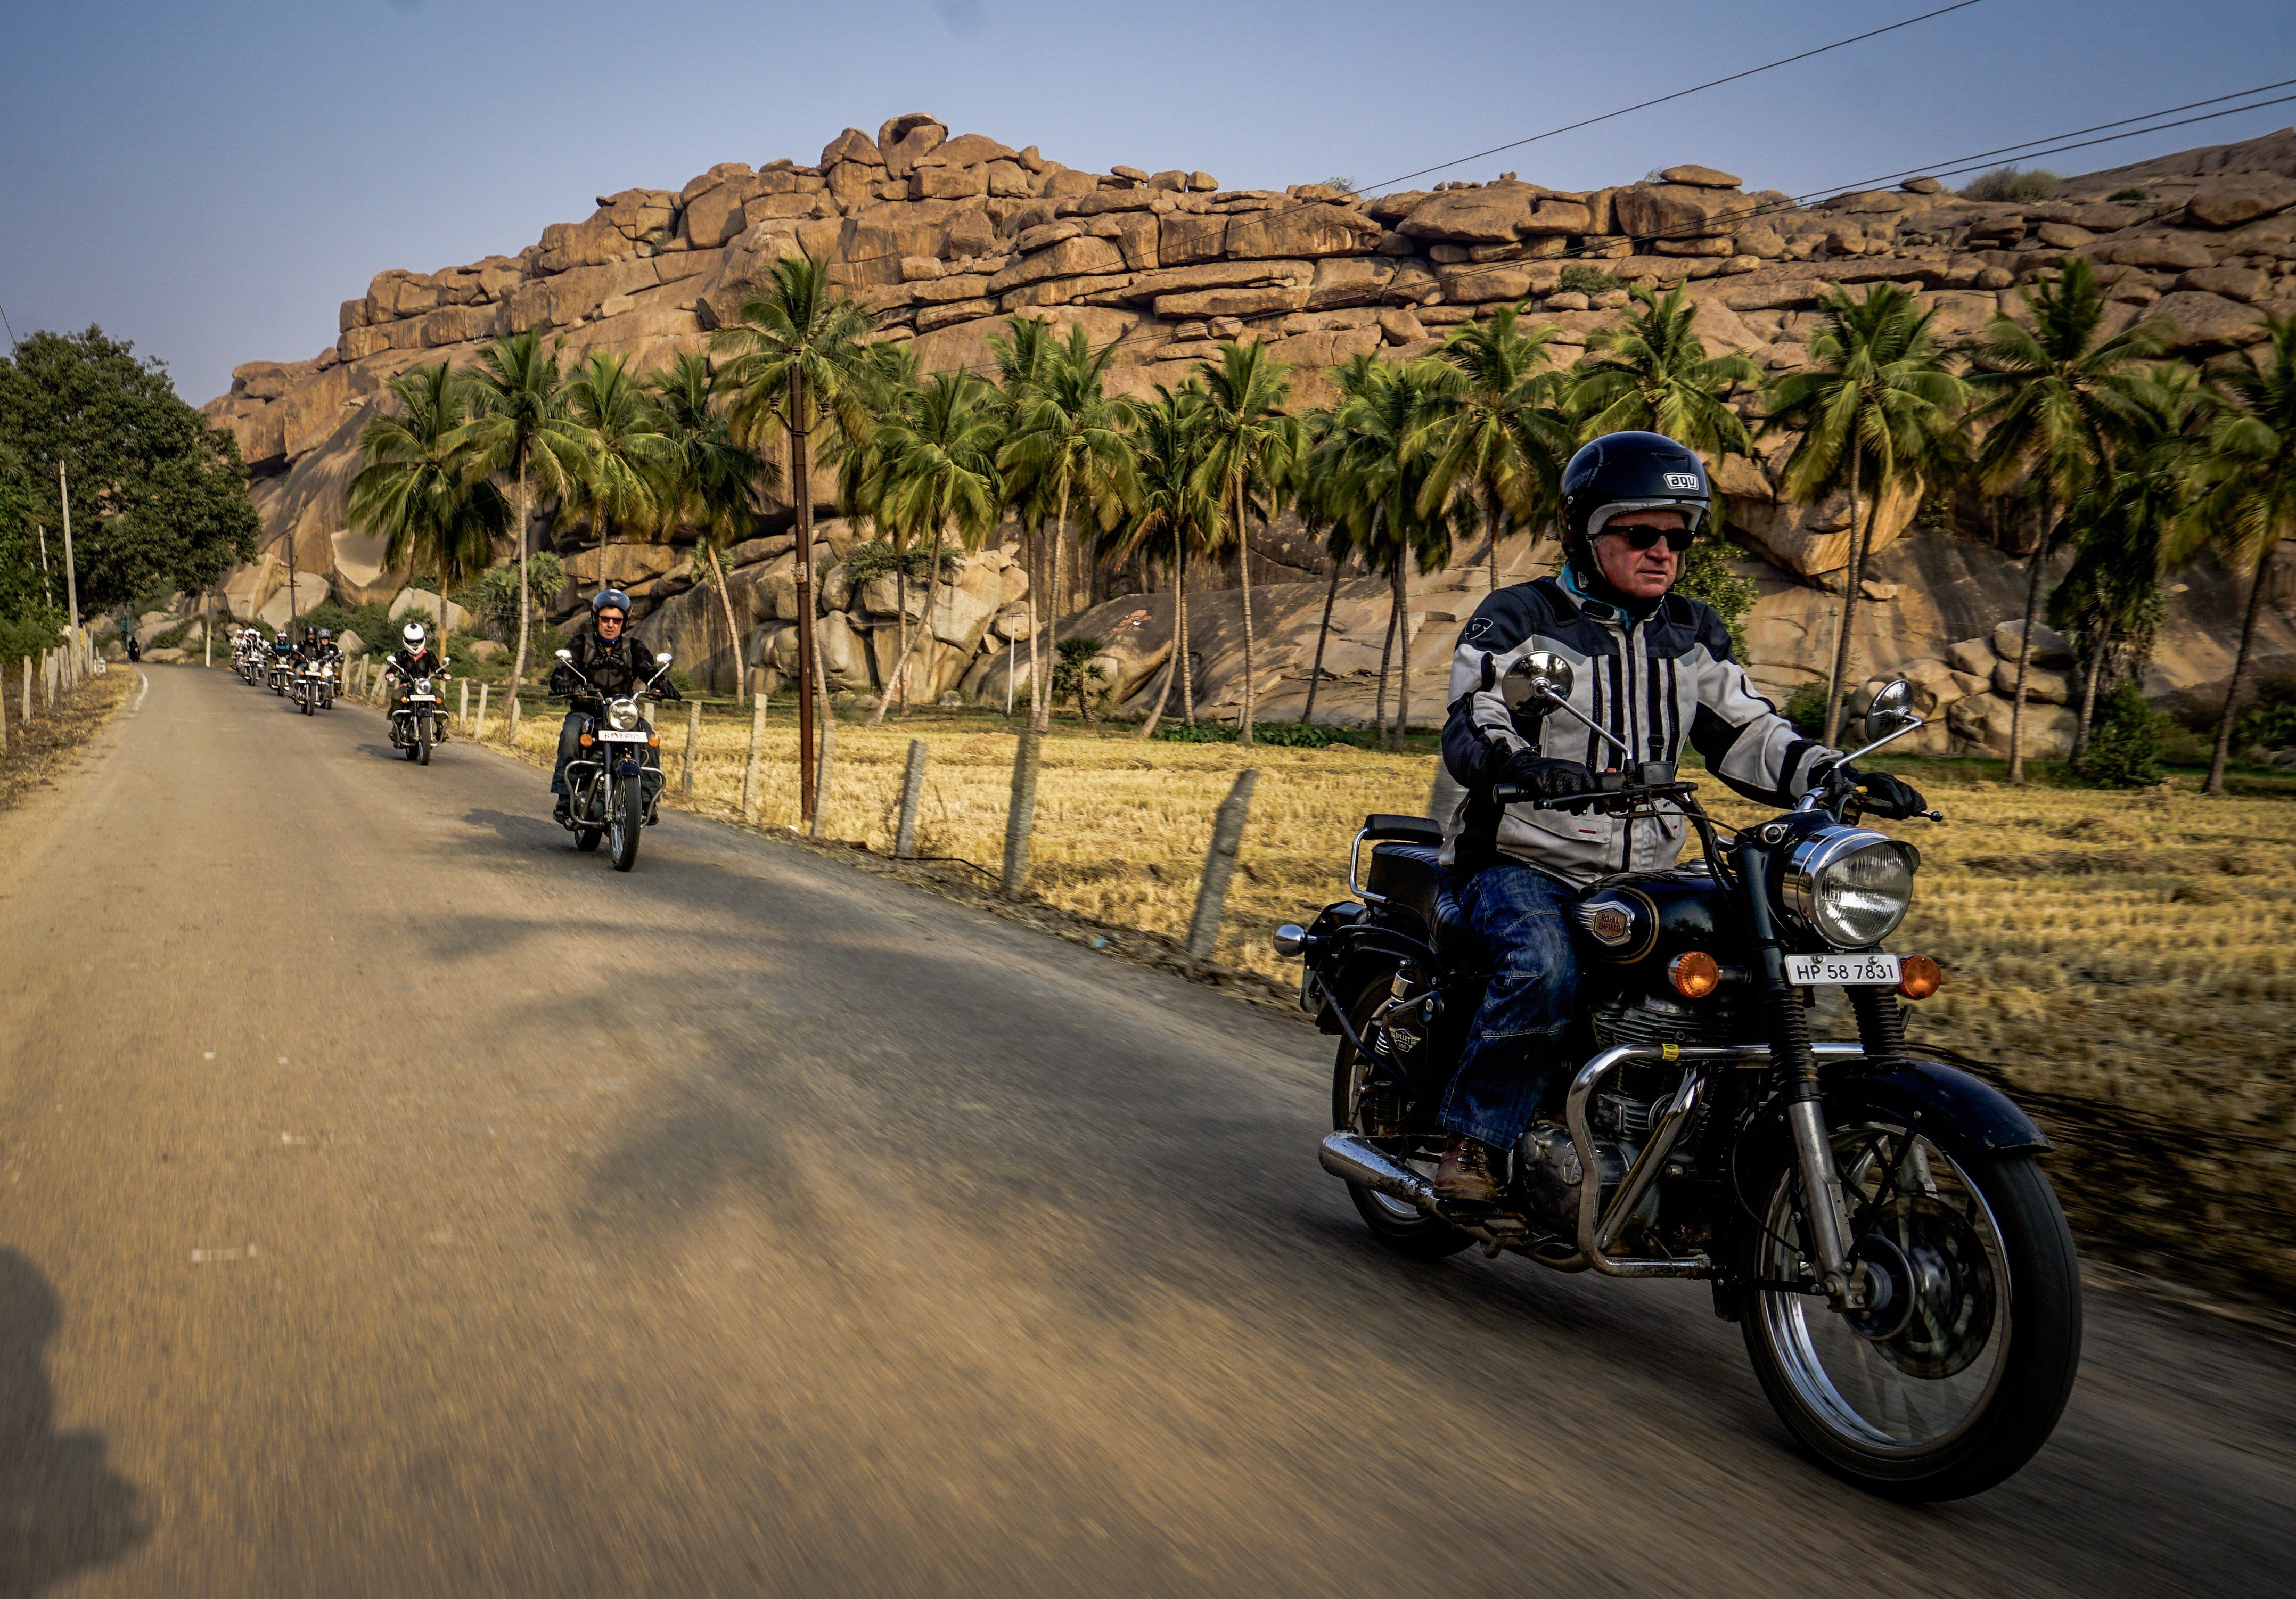 motorbikes touring in India with palm trees and desert